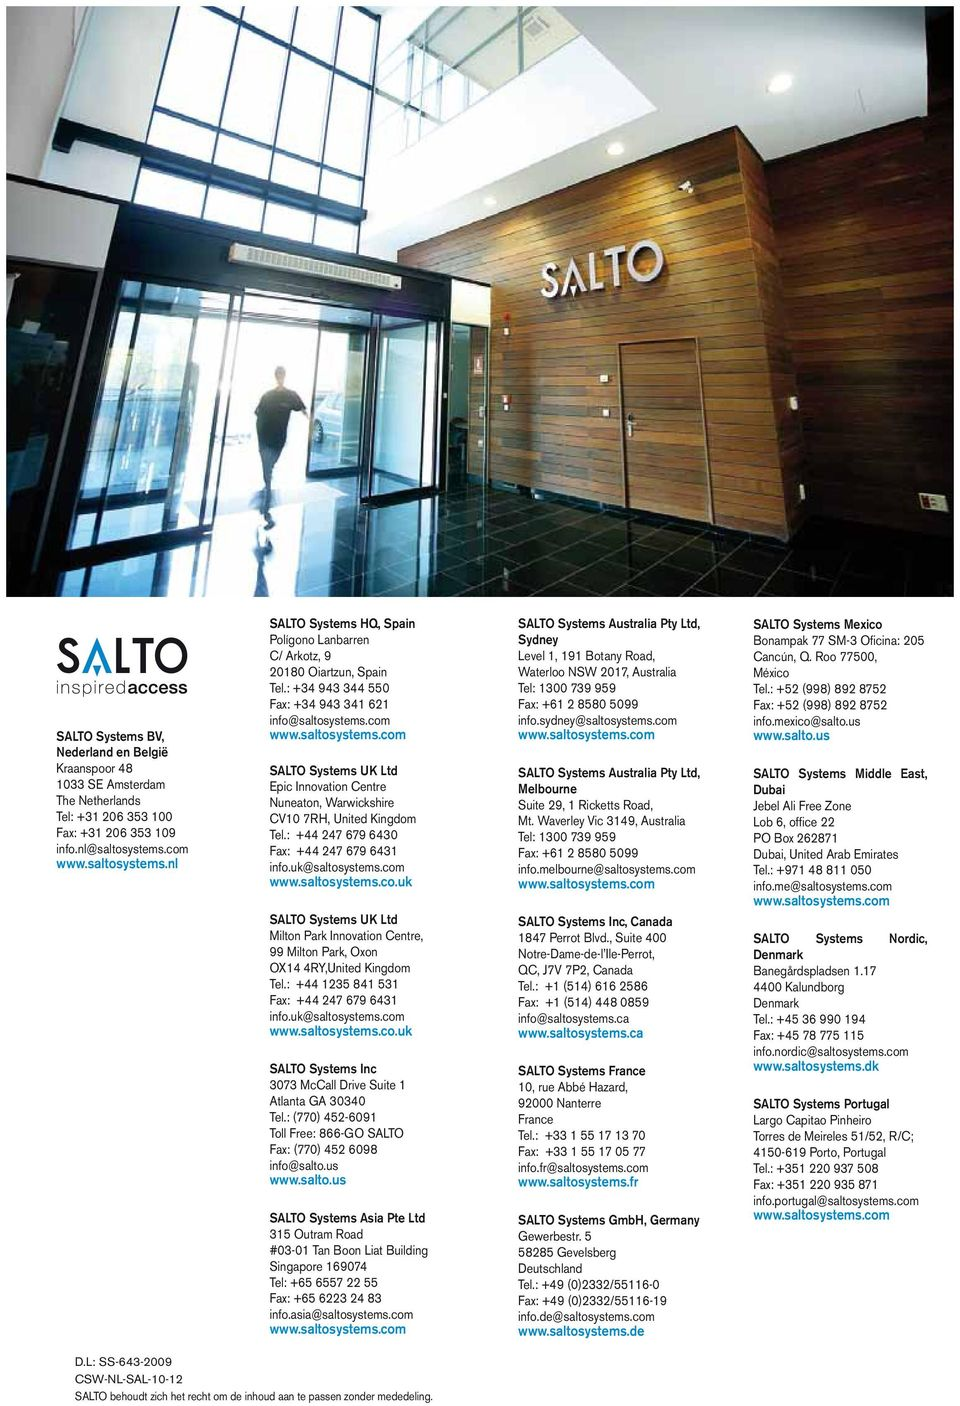 com SALTO Systems UK Ltd Epic Innovation Centre Nuneaton, Warwickshire CV10 7RH, United Kingdom Tel.: +44 247 679 6430 Fax: +44 247 679 6431 info.uk@saltosystems.com www.saltosystems.co.uk SALTO Systems UK Ltd Milton Park Innovation Centre, 99 Milton Park, Oxon OX14 4RY,United Kingdom Tel.